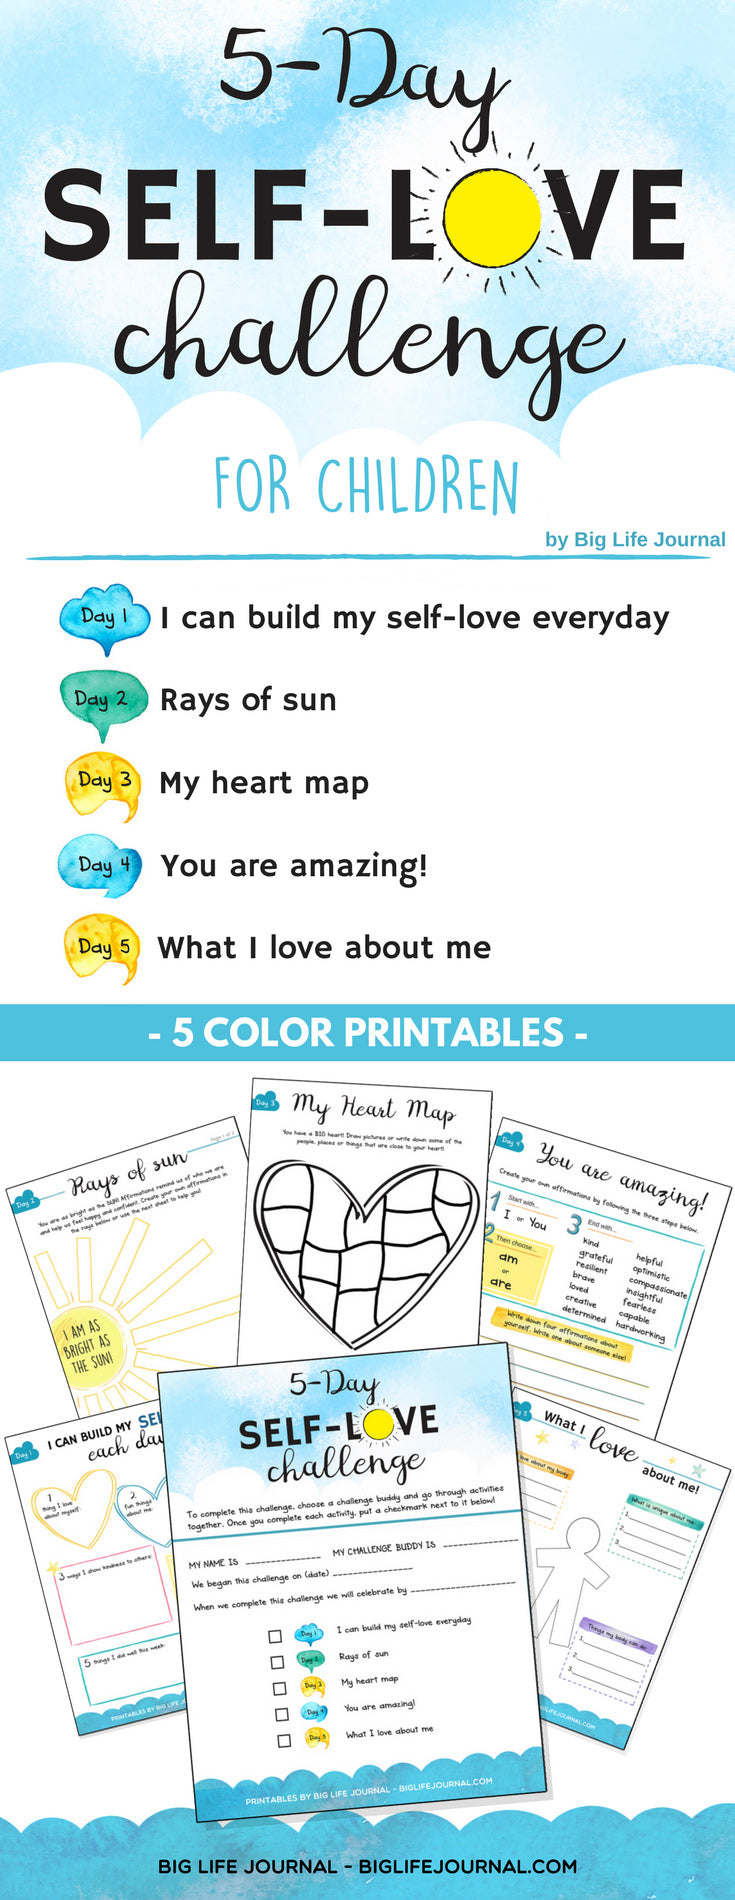 Infographic-Self-Love 5 Day-Challenge-child-worth-esteem-printable-big-life-journal